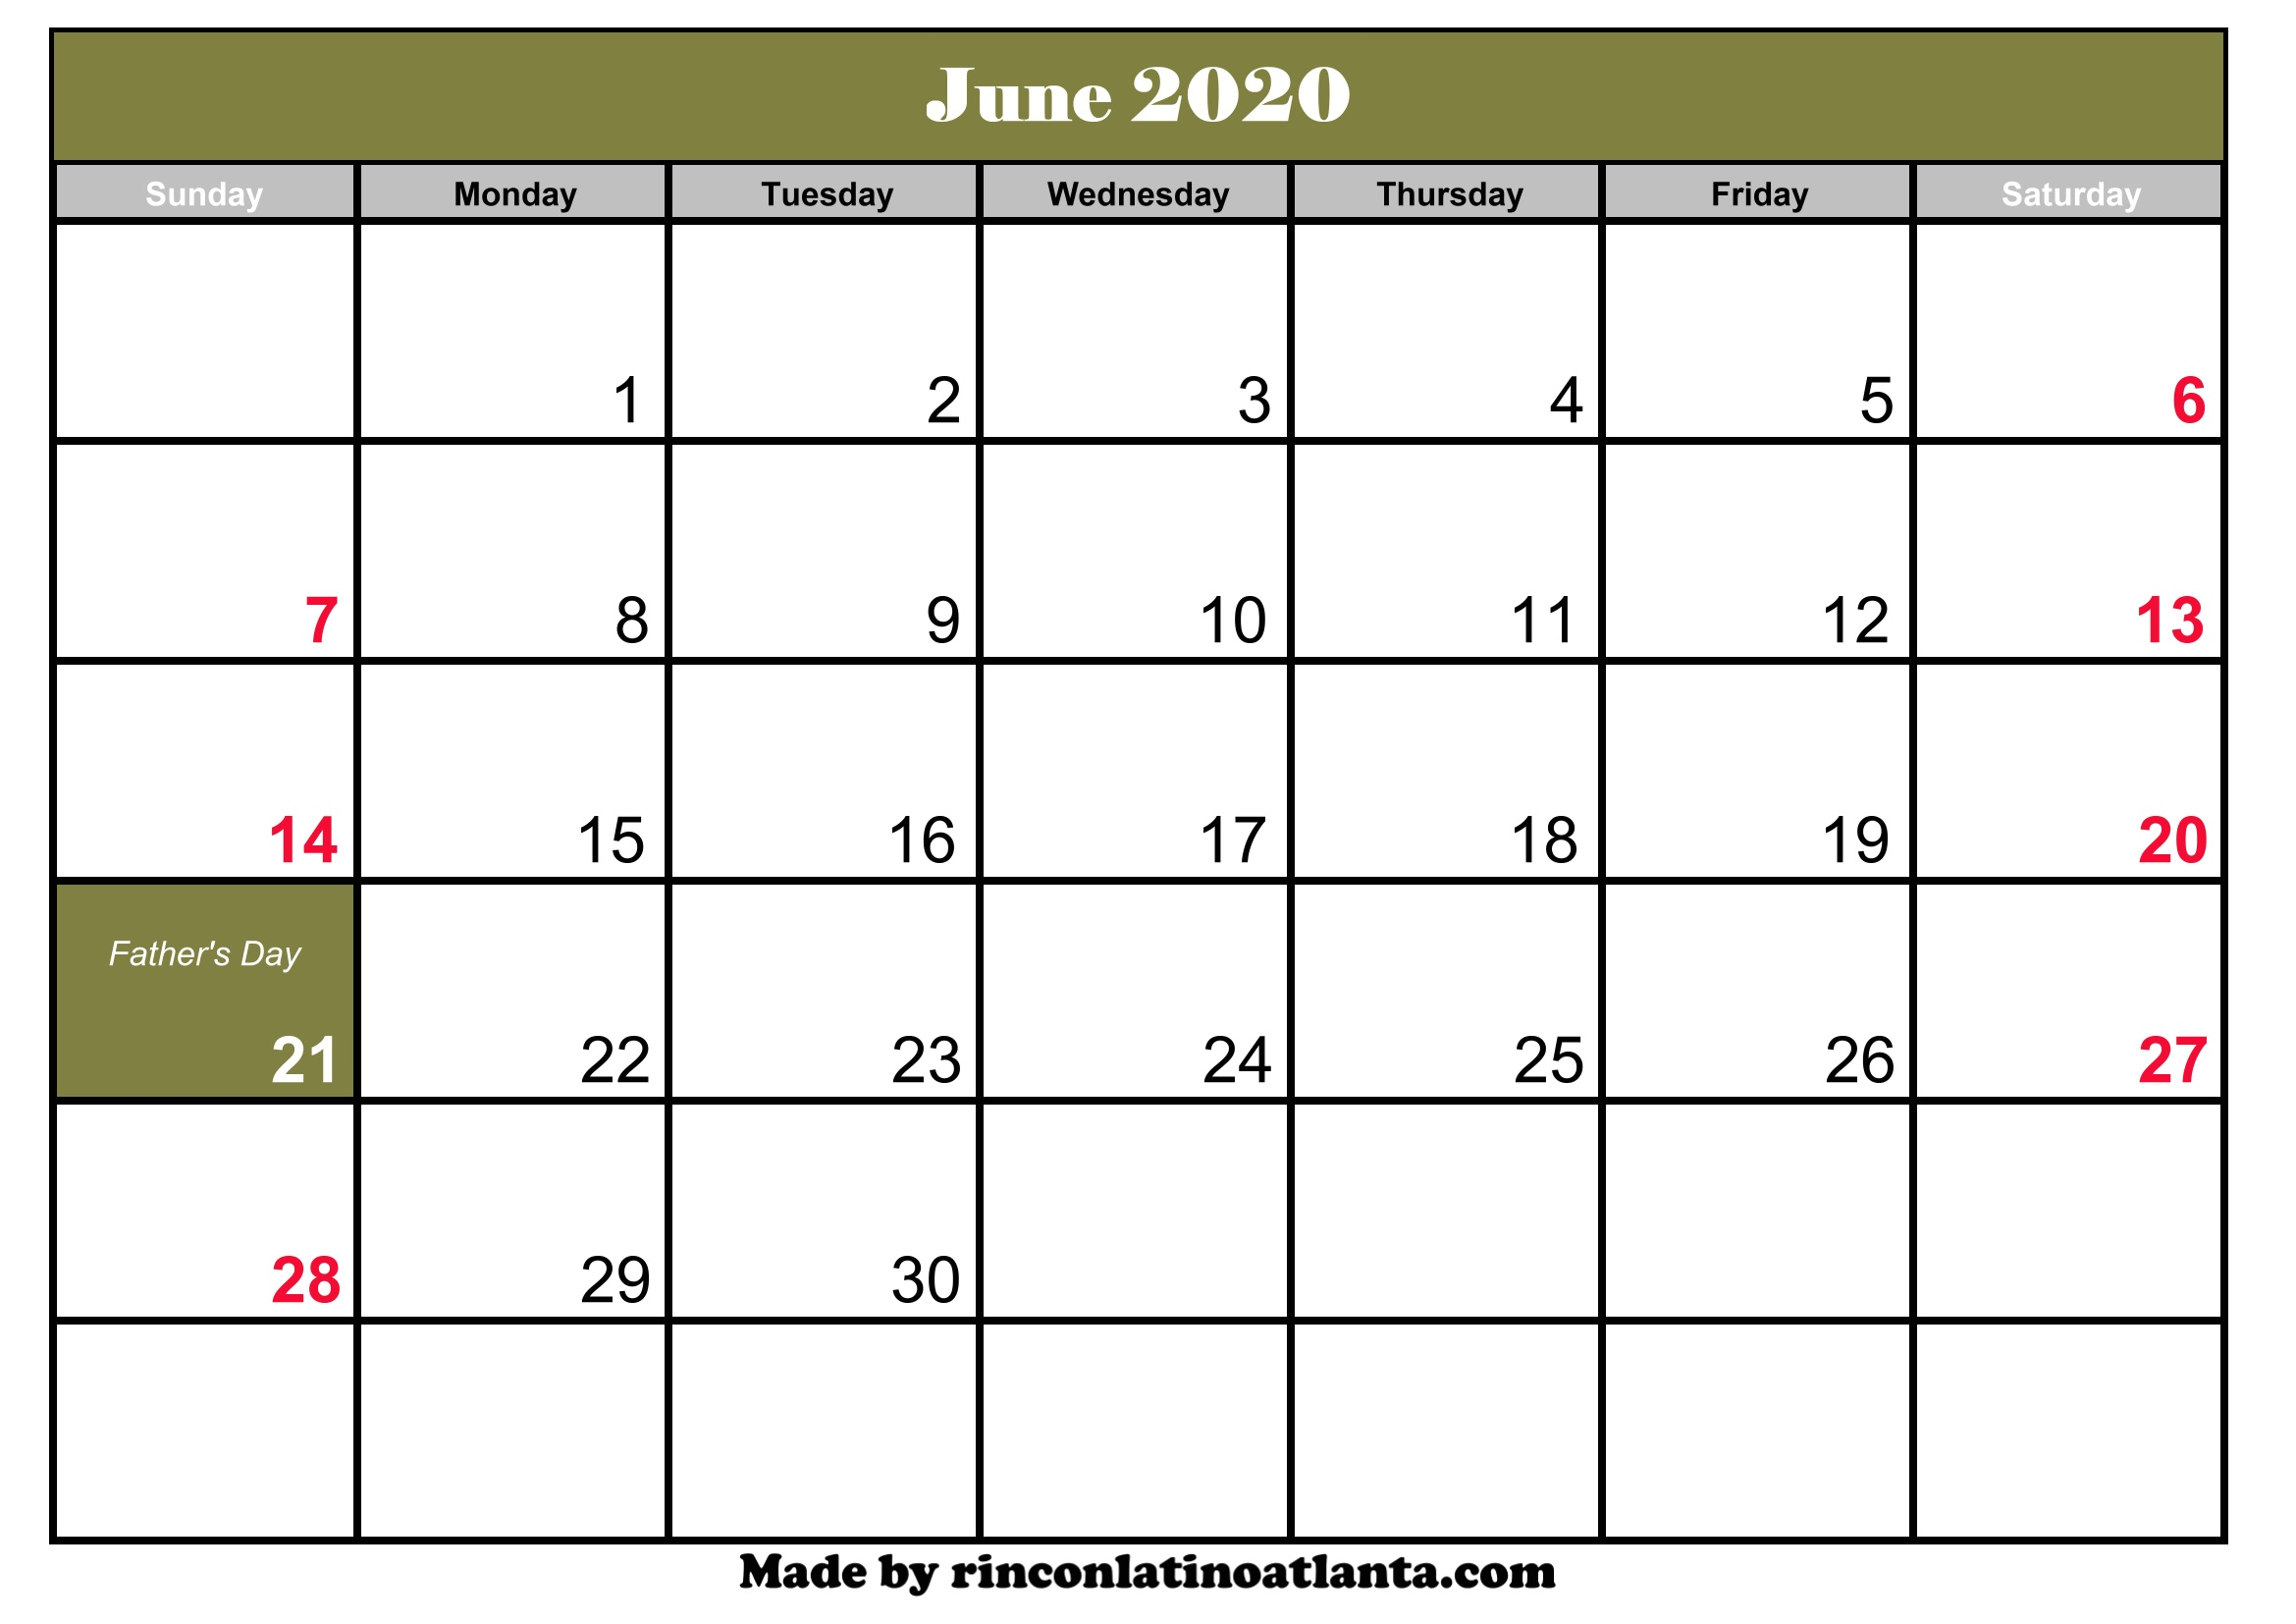 Calendar June 2020.June 2020 Calendar Printable With Holidays Calendar Template Printable